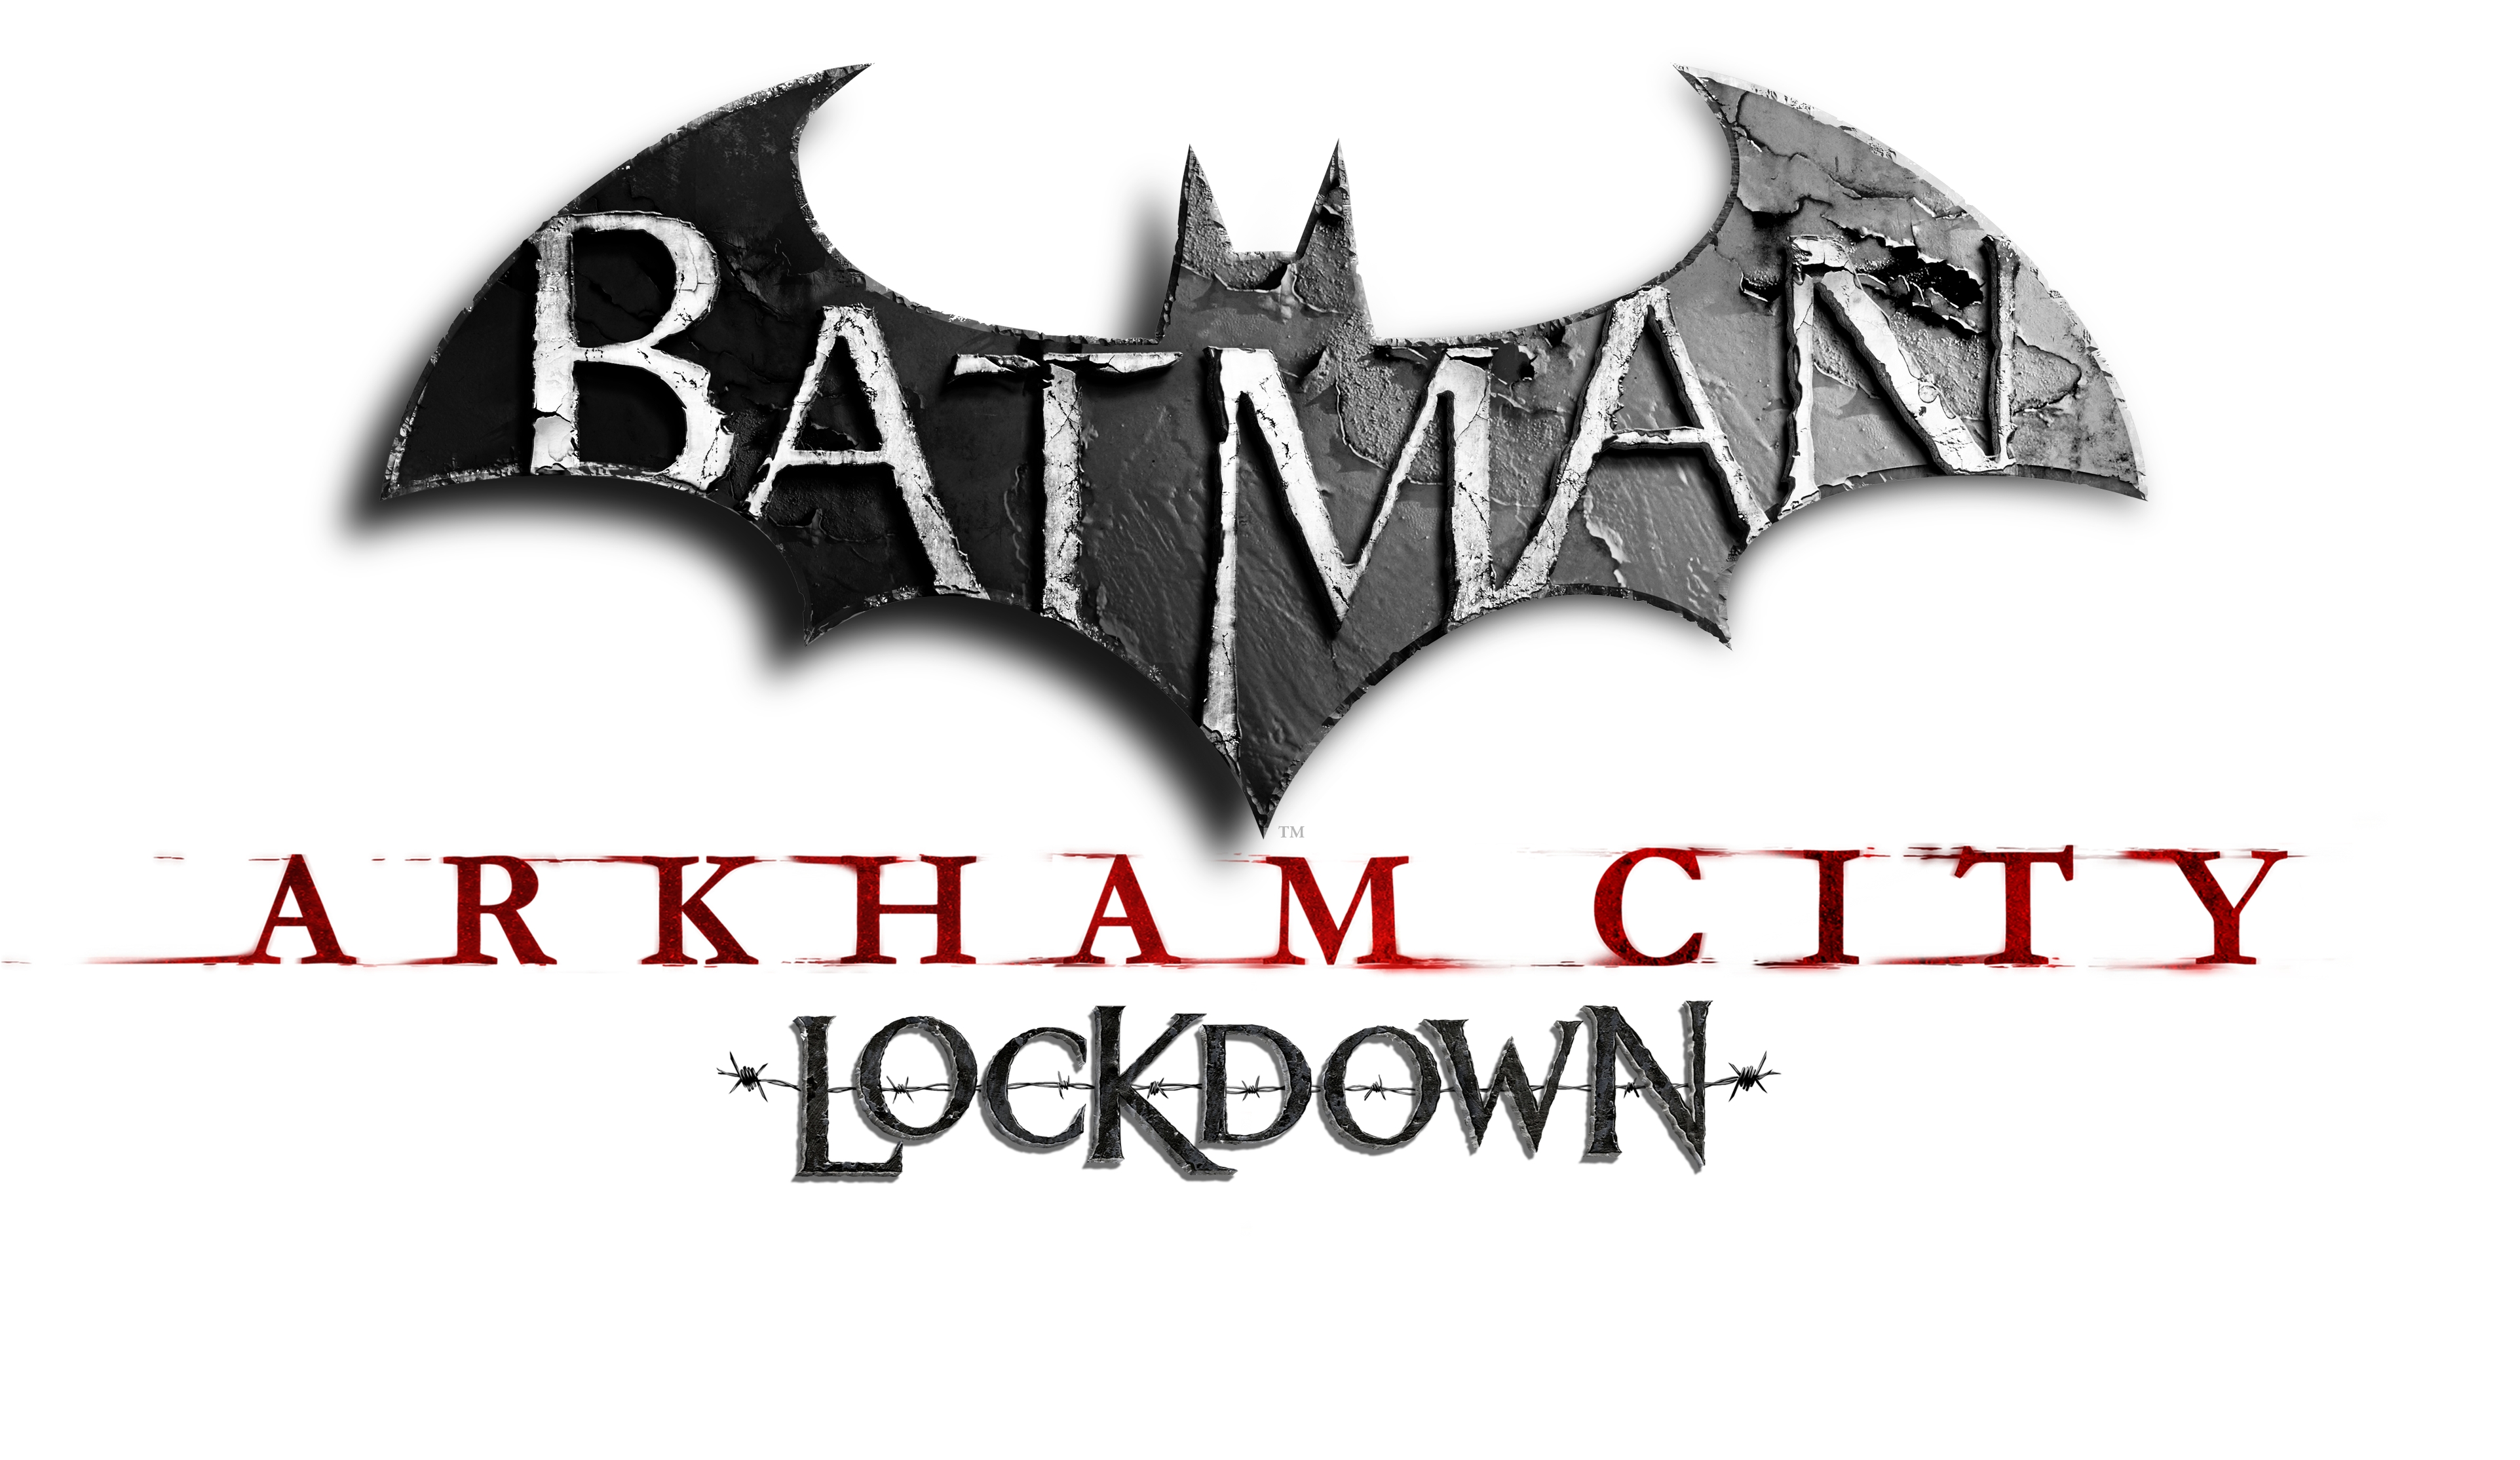 Batman-arkham-city-lockdown-logo_ultimatecompromise_psd_jpgcopy